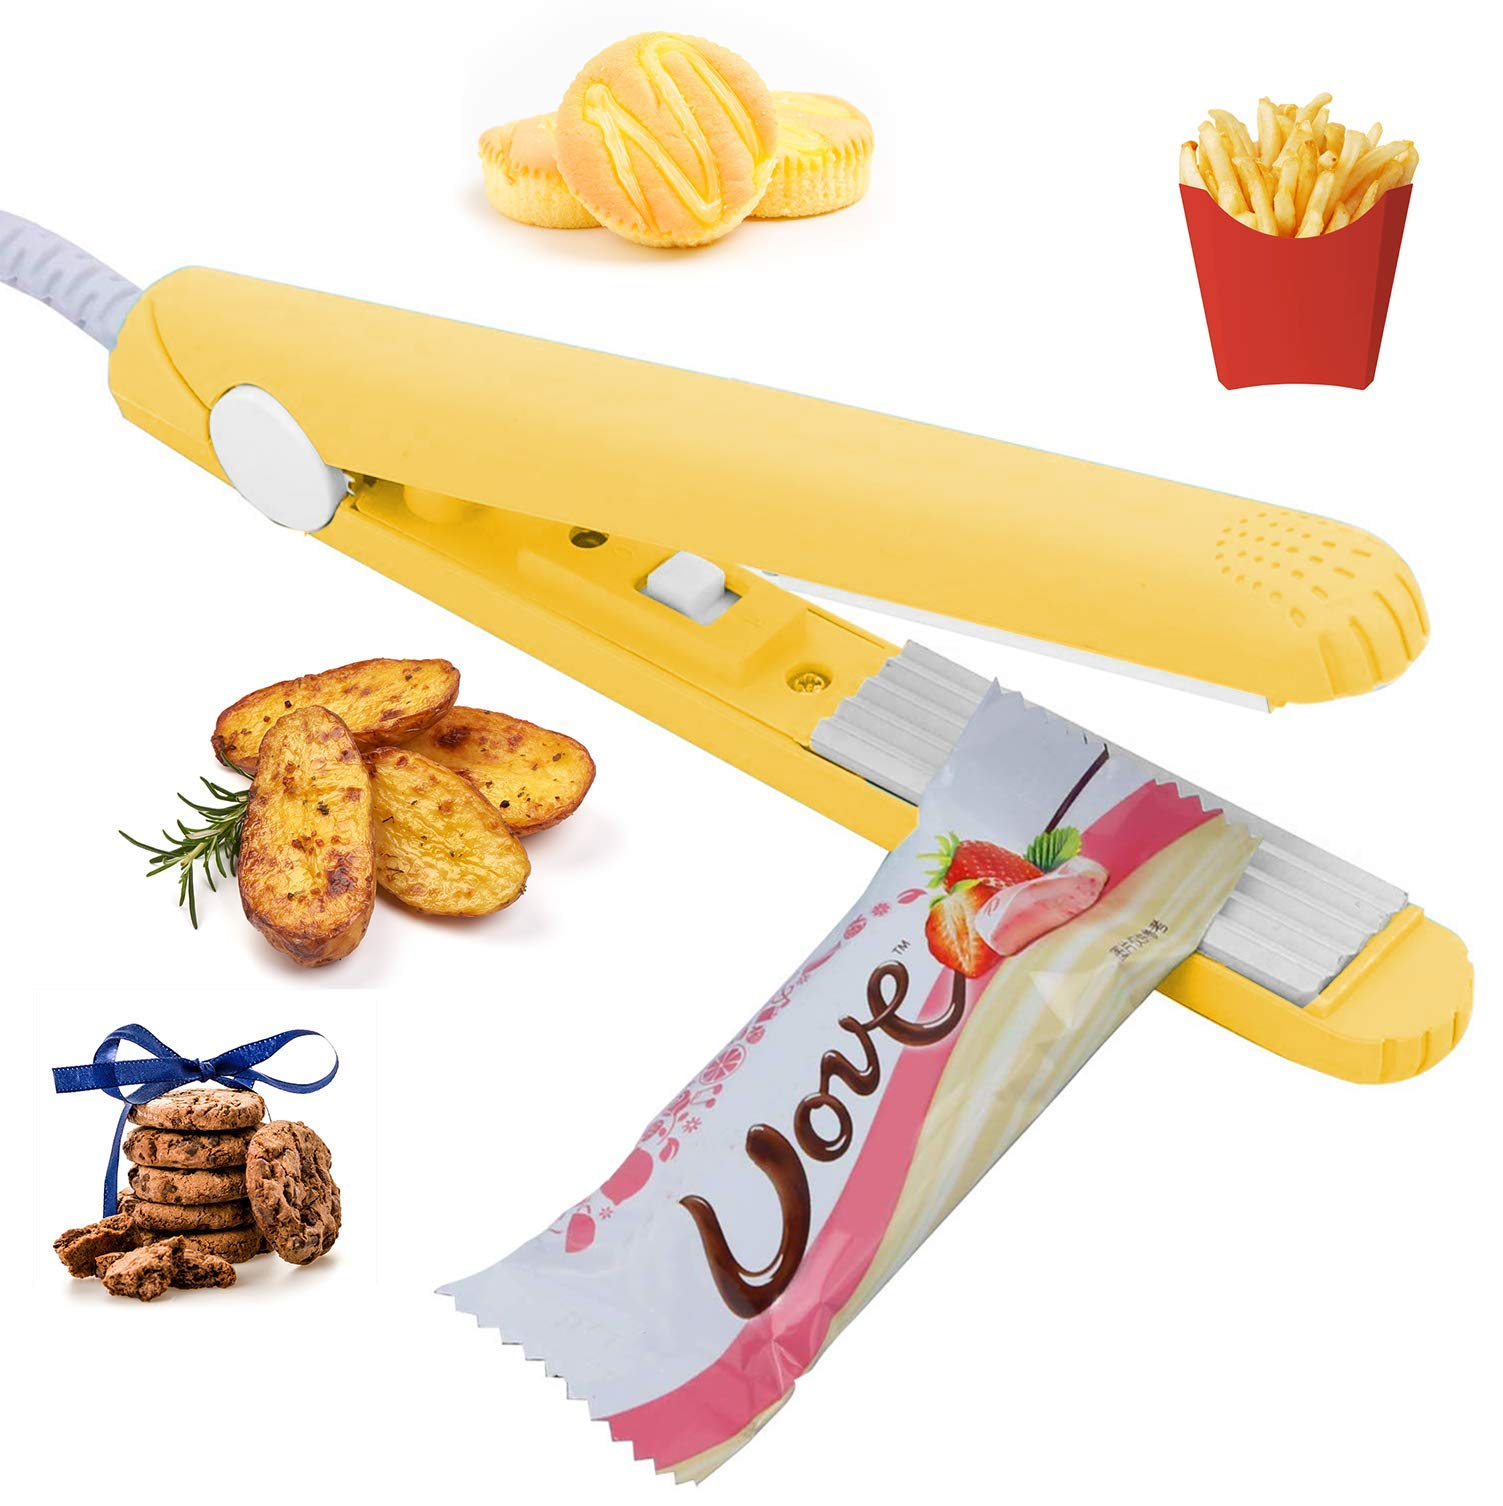 """Smart Bag Sealer Heat Seal Handheld for Food Storage, Portable Food Sealer Heat Sealing Machine with 45"""" Power Cable for Small Plastic Bags, Vacuum Sealer Bags, Chip Bags, Snack Bags -Yellow"""